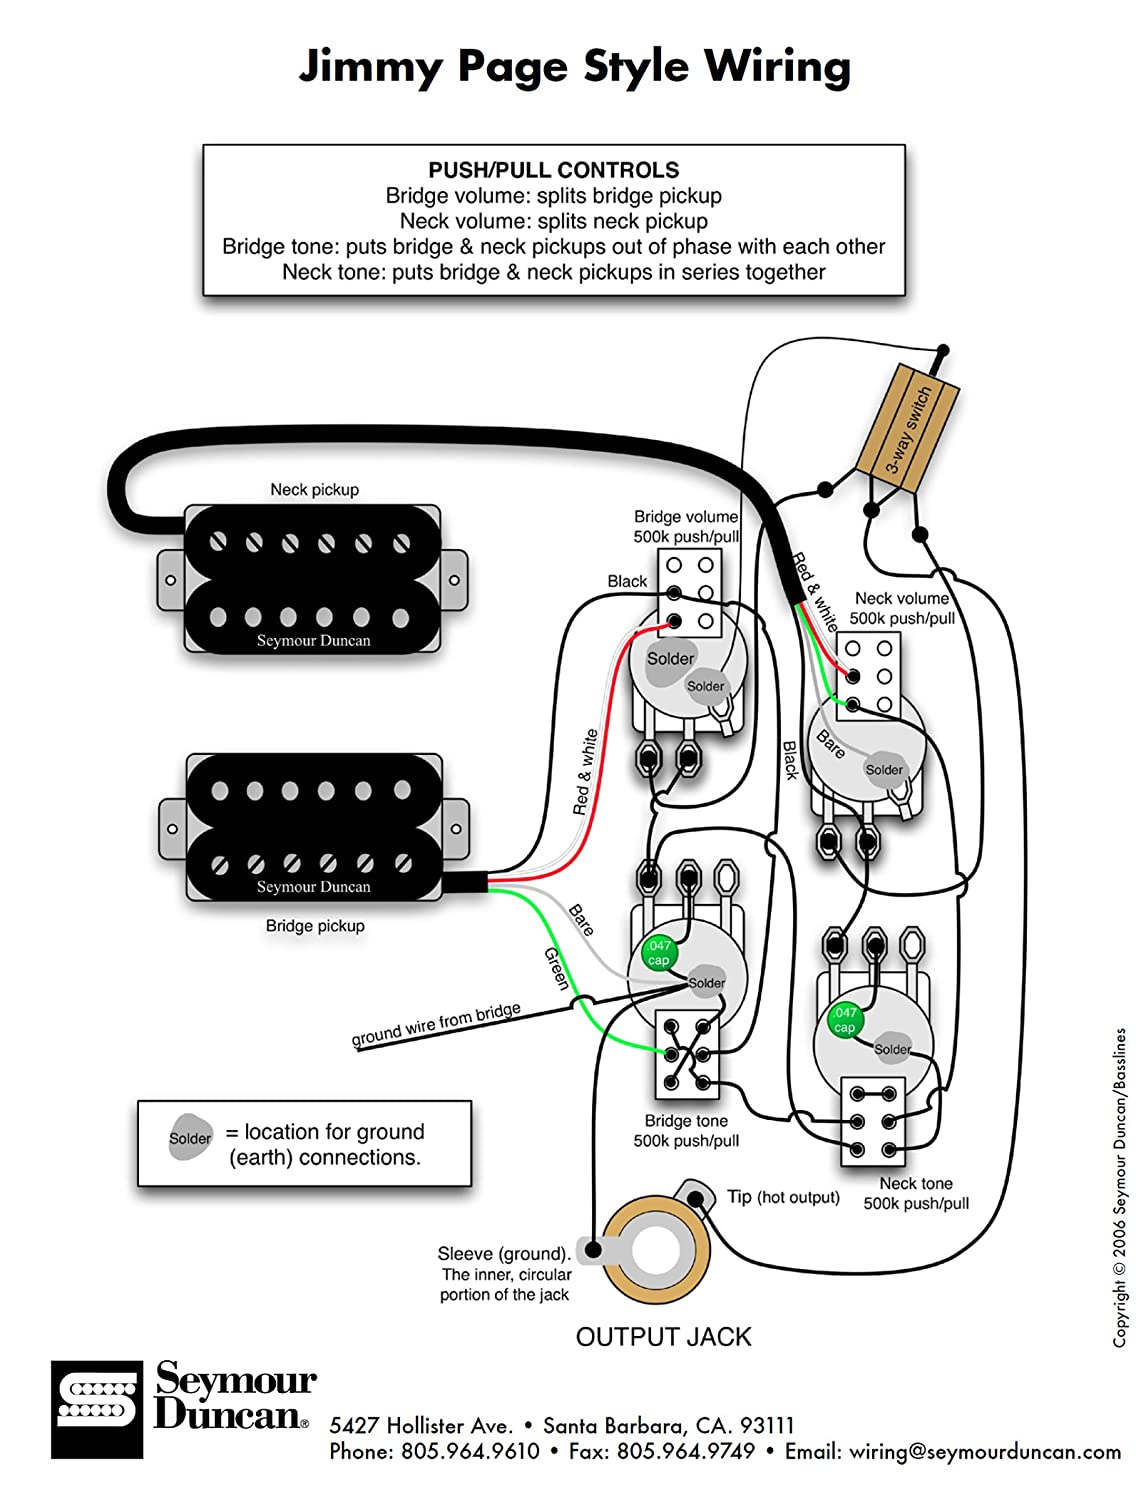 Wiring Diagram Seymour Duncan - Wiring Diagram Blog Data on harmony wiring diagram, rickenbacker wiring diagram, mosrite wiring diagram, telecaster wiring diagram, danelectro wiring diagram, soloist wiring diagram, korg wiring diagram, srv wiring diagram, seymour duncan wiring diagram, hamer wiring diagram, fender s1 switch wiring diagram, taylor wiring diagram, american wiring diagram, gibson wiring diagram, japan wiring diagram, fender blues junior wiring diagram, guitar wiring diagram, gretsch wiring diagram, les paul wiring diagram, accessories wiring diagram,